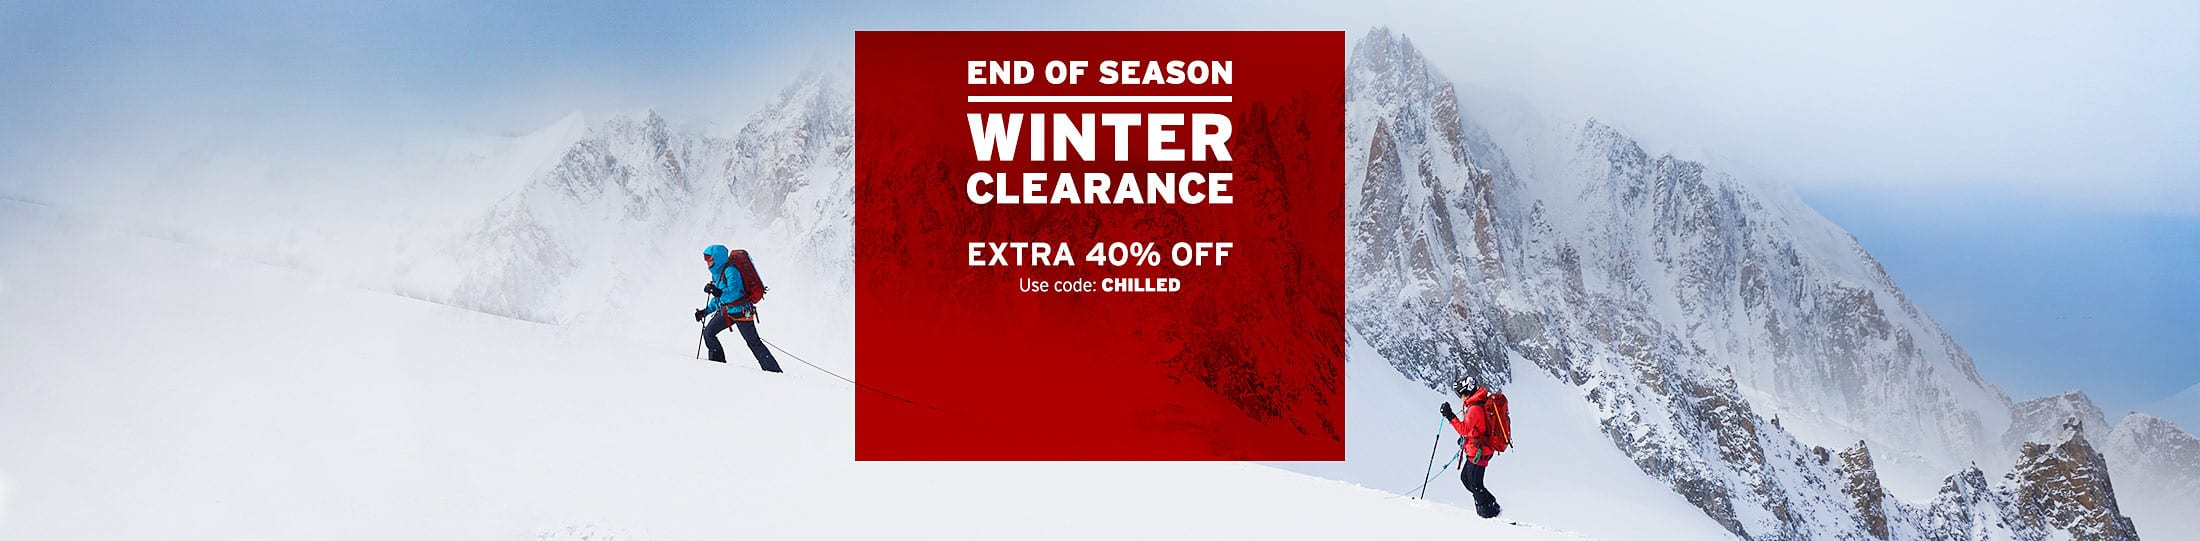 Eddie Bauer take an extra 40% off select winter items